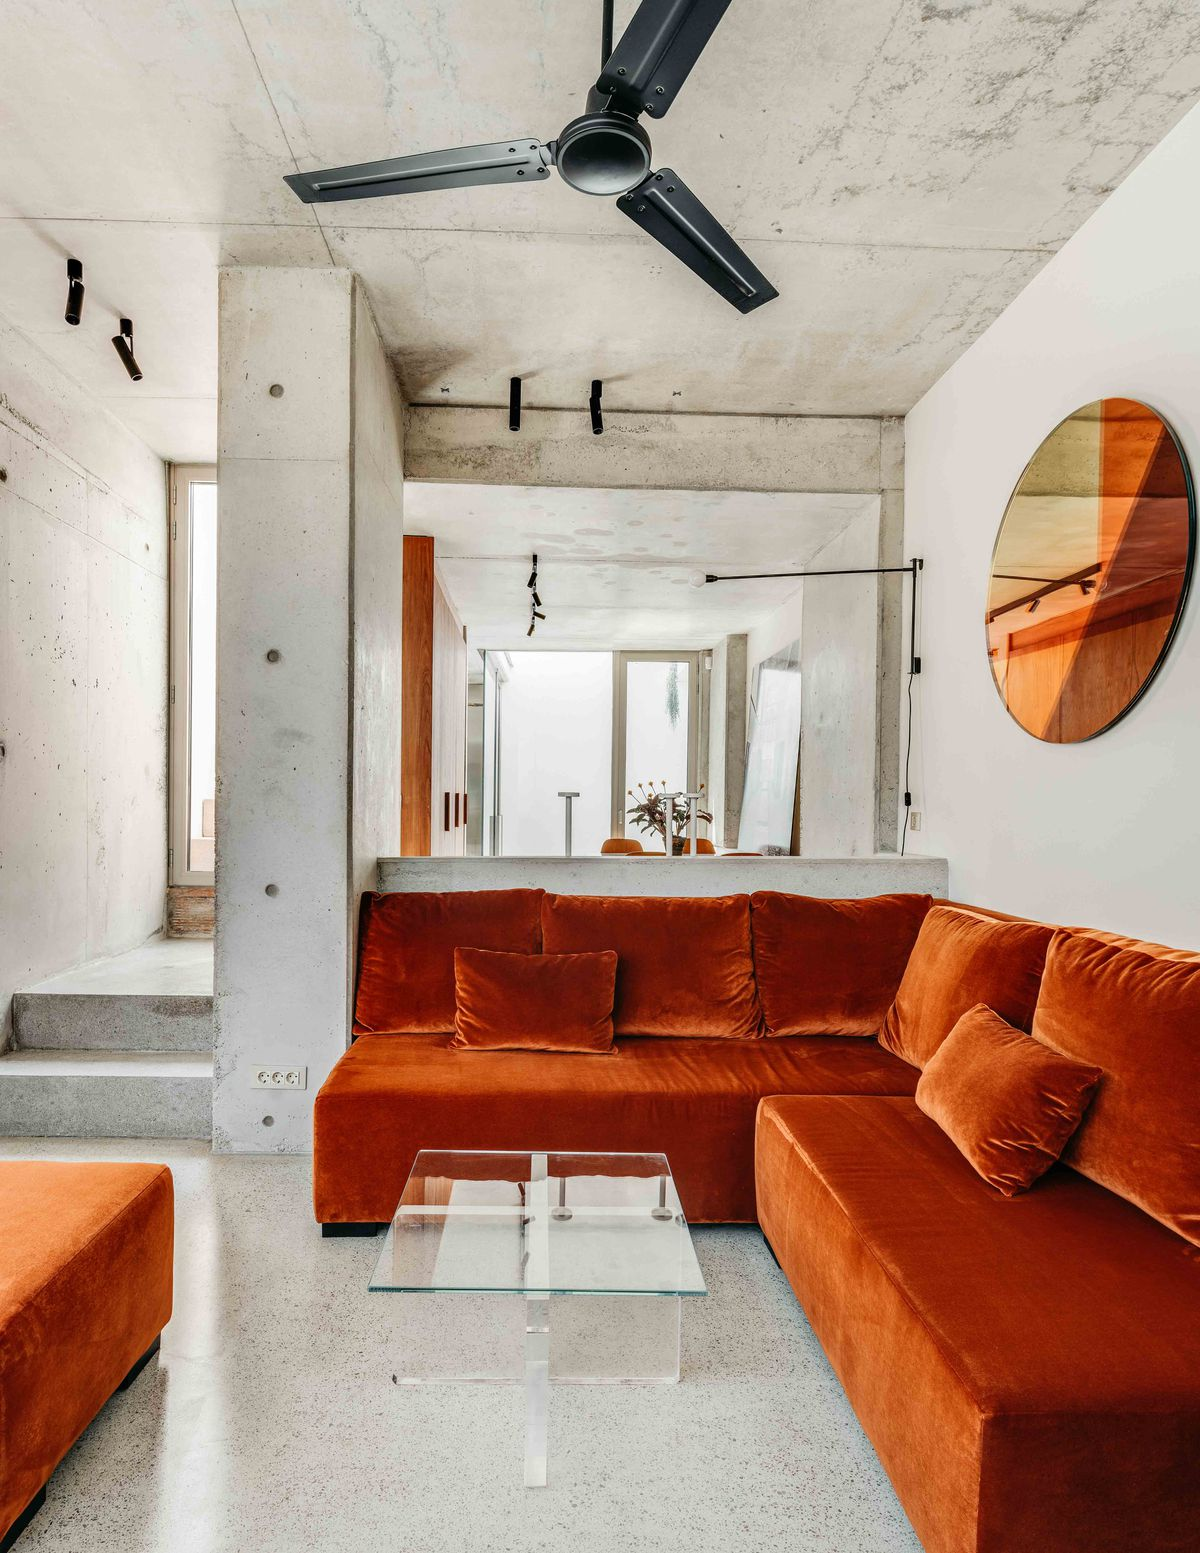 View of living room with burnt orange couch